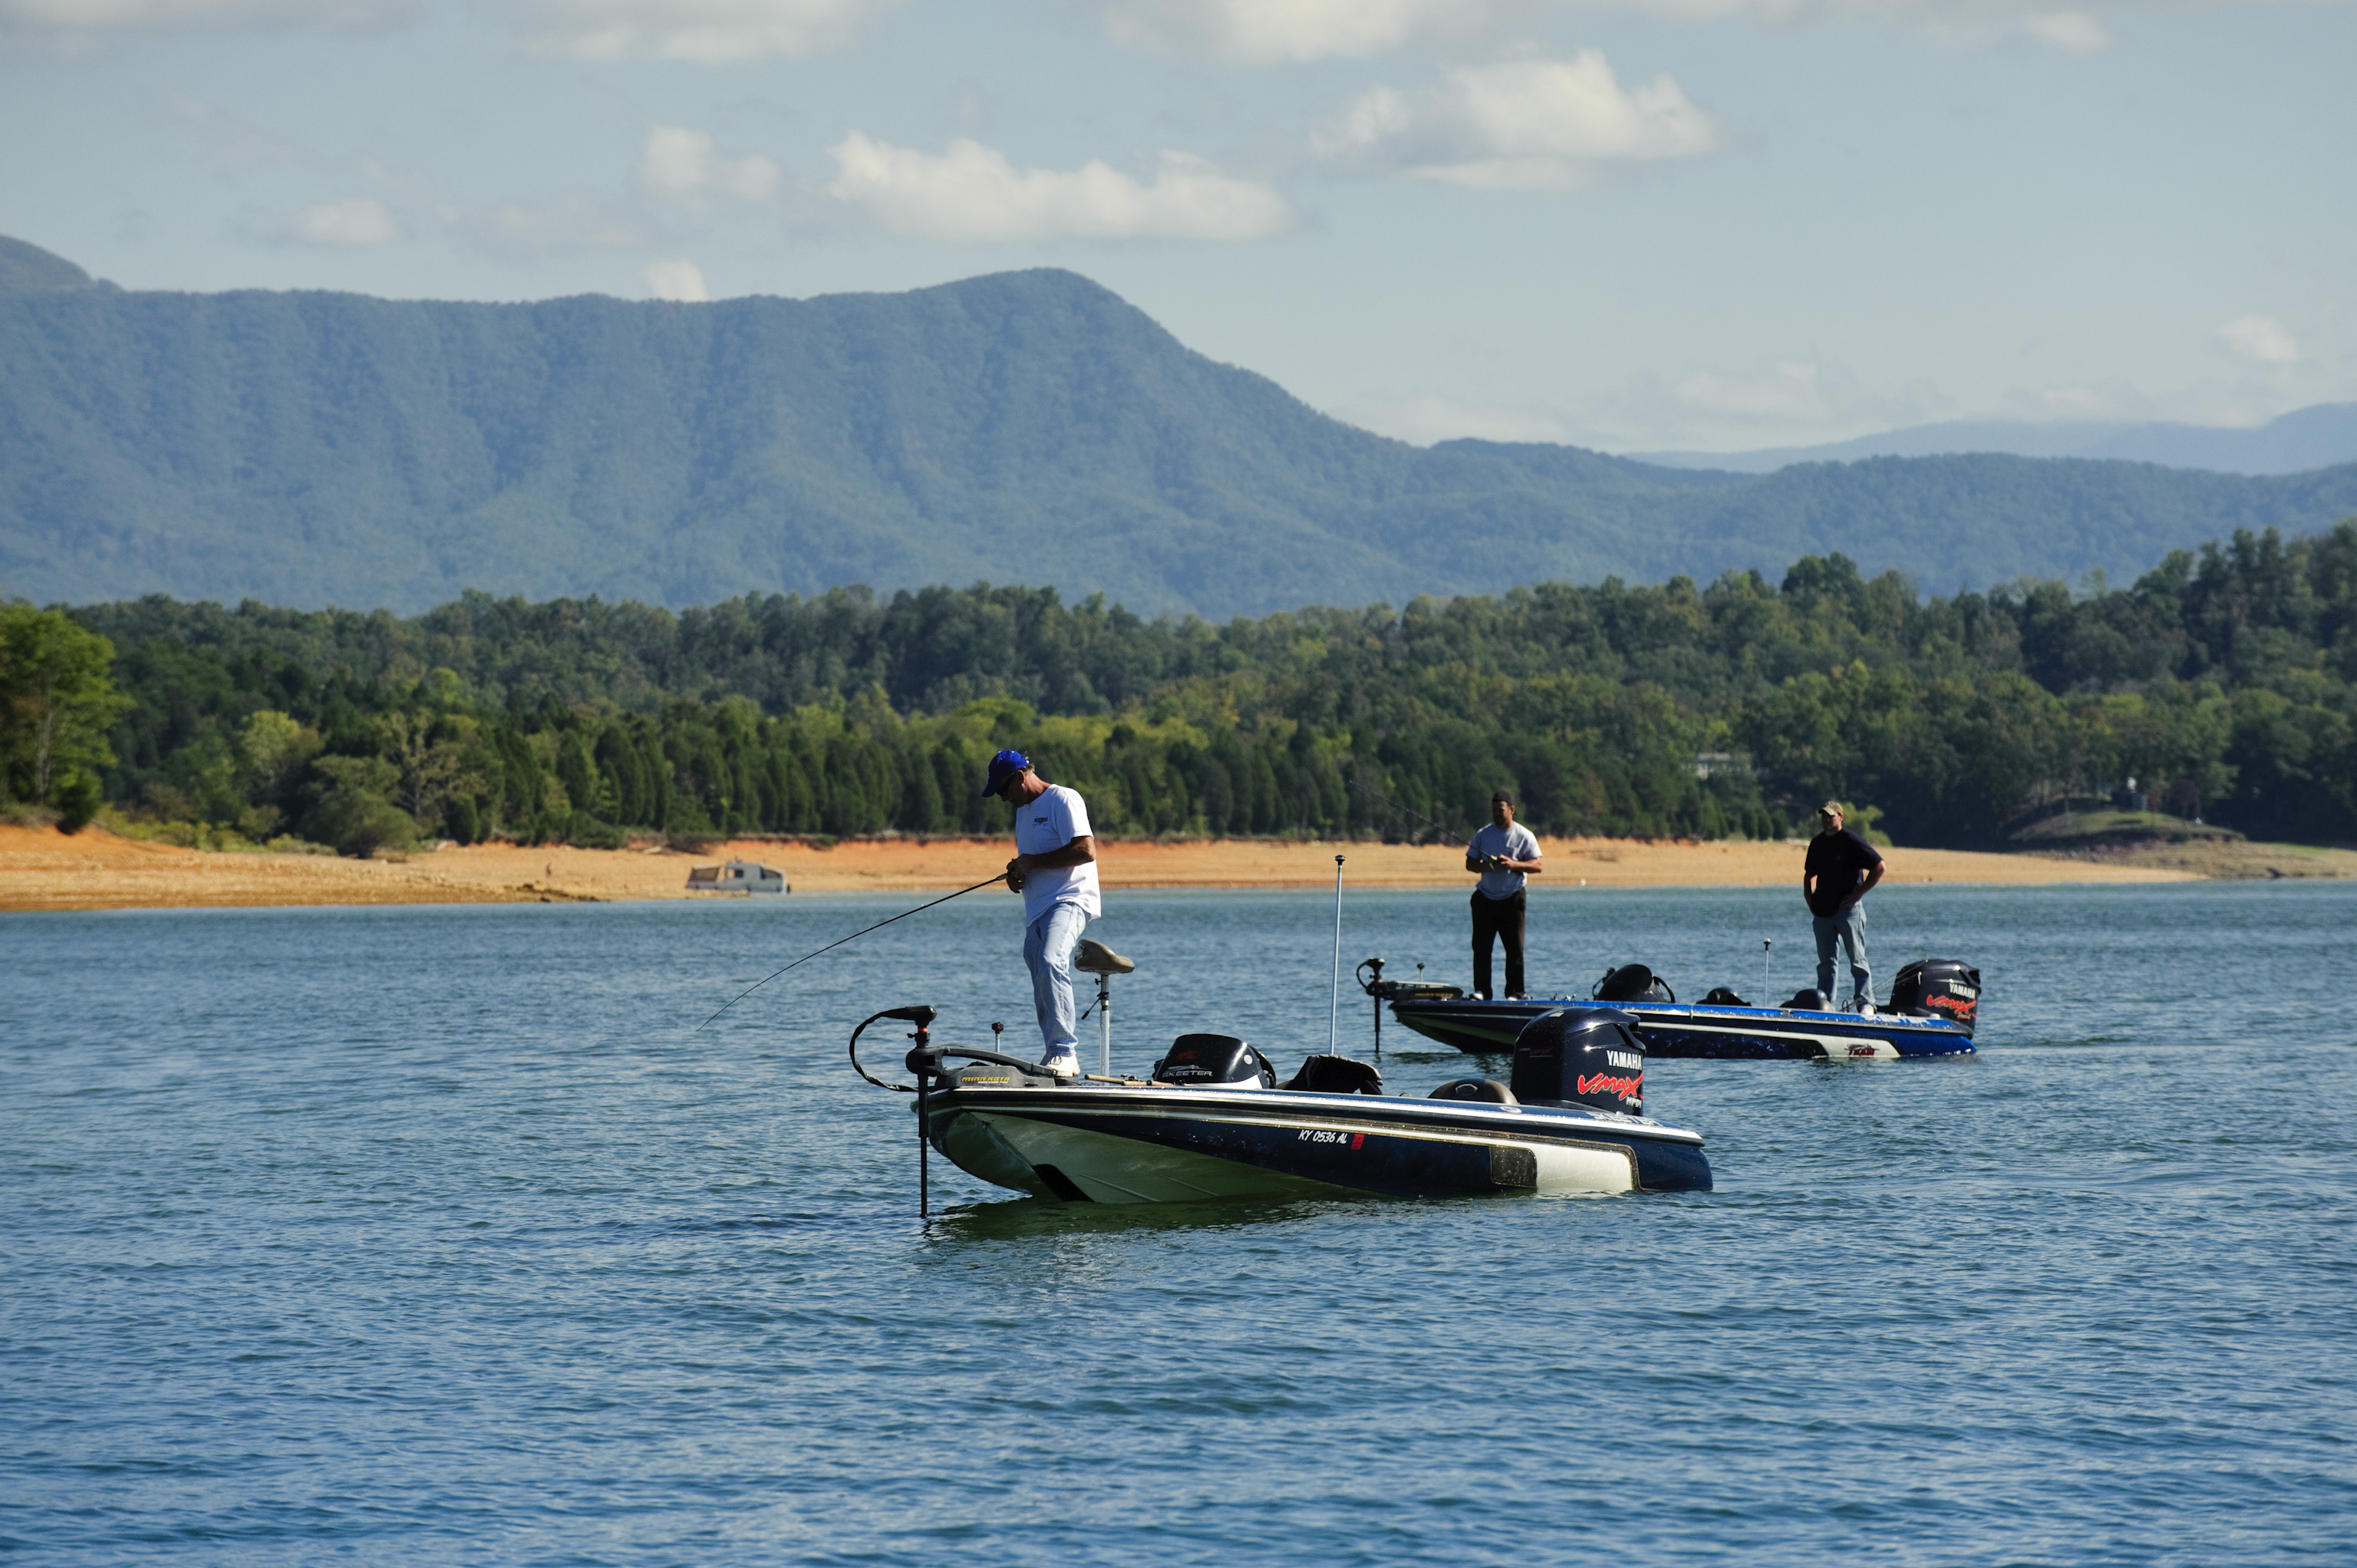 Fish the clinch river for striped bass douglas lake for for Douglas lake fishing